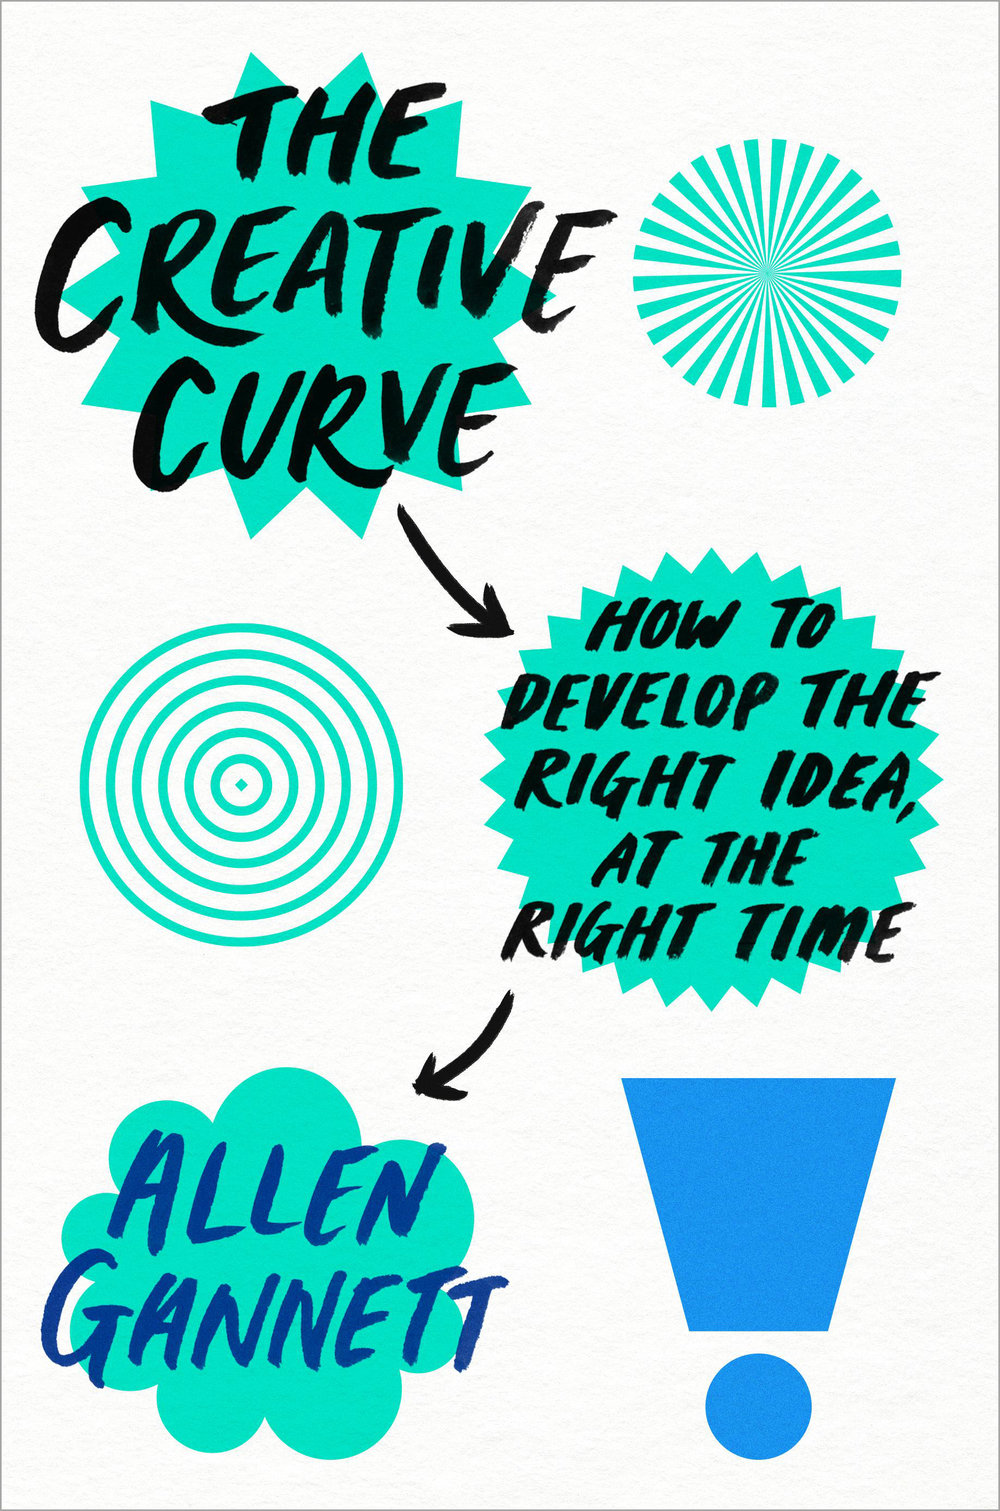 Allen's book: The Creative Curve